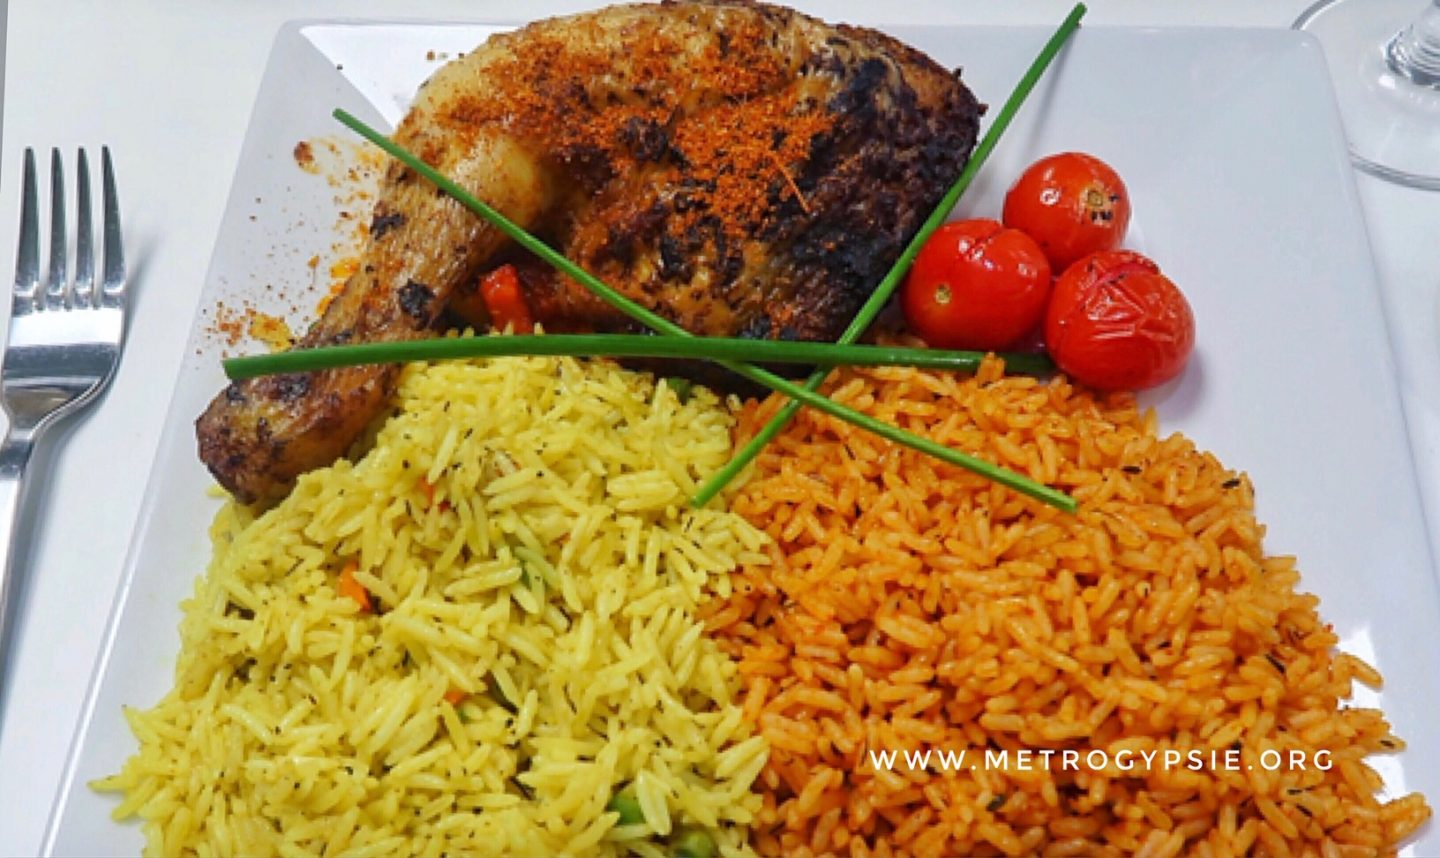 Nigerian Restaurants in London to eat for £10 or less!